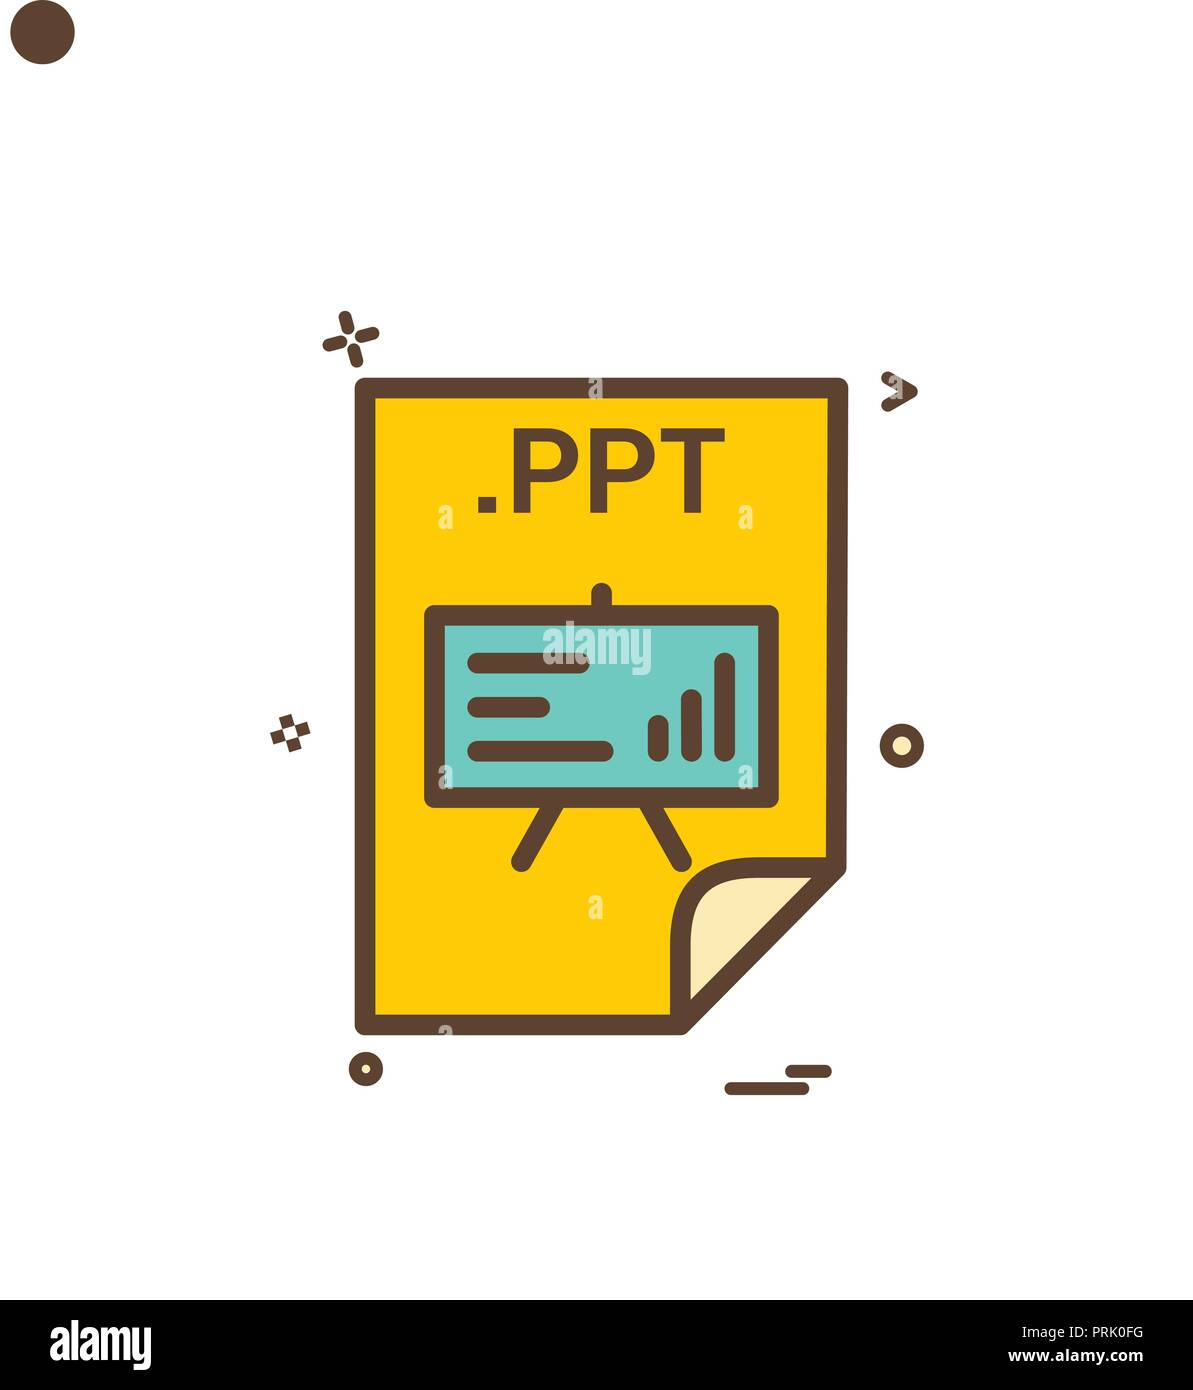 ppt application download file files format icon vector design stock